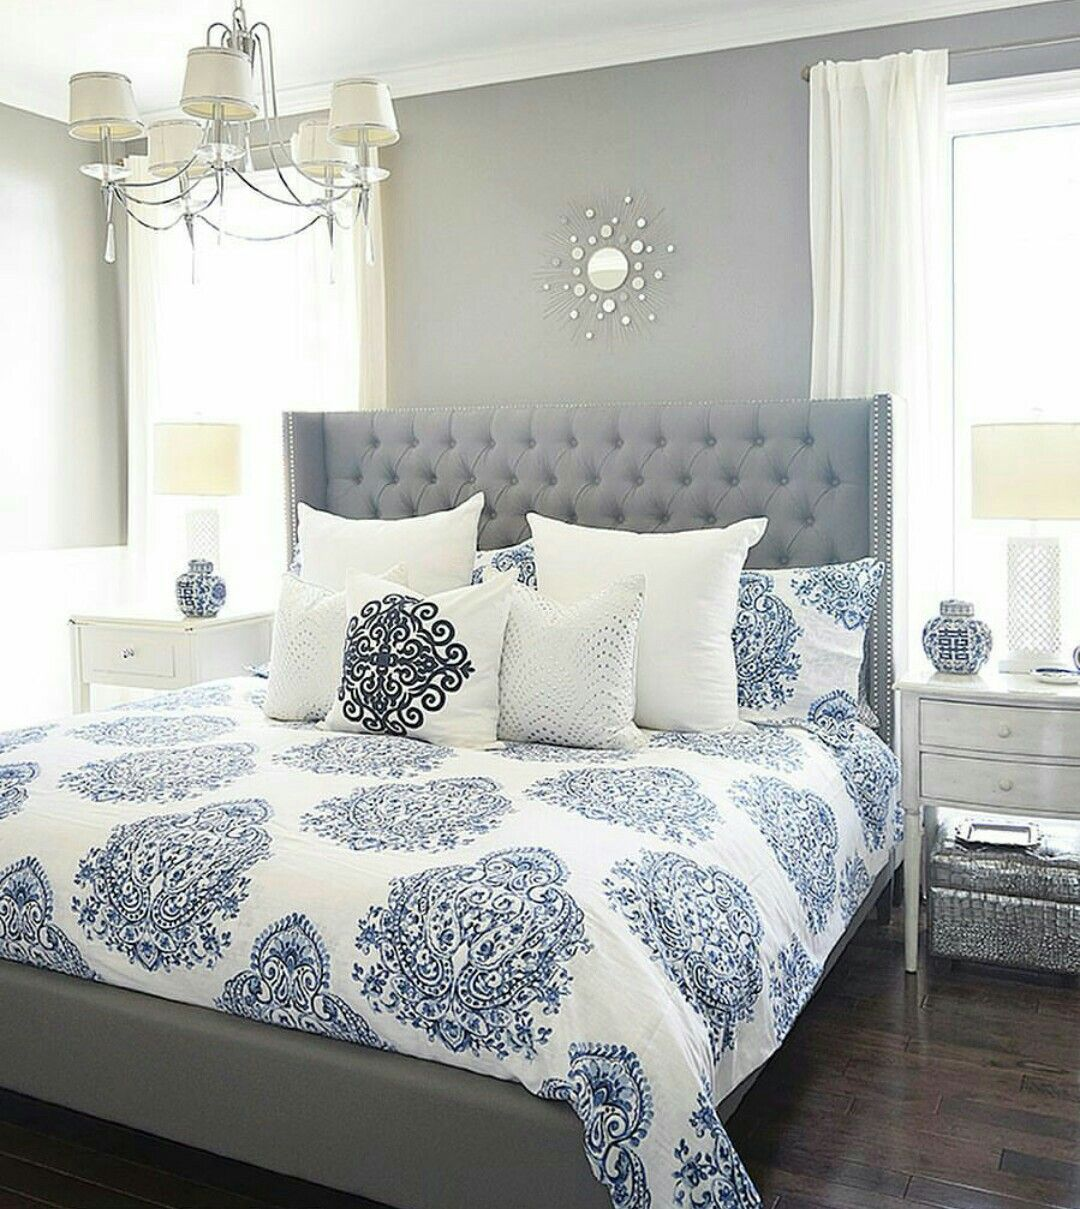 Large master bedroom decor ideas  Pin by Ale Rocst on Home  Pinterest  Bedrooms Master bedroom and Room